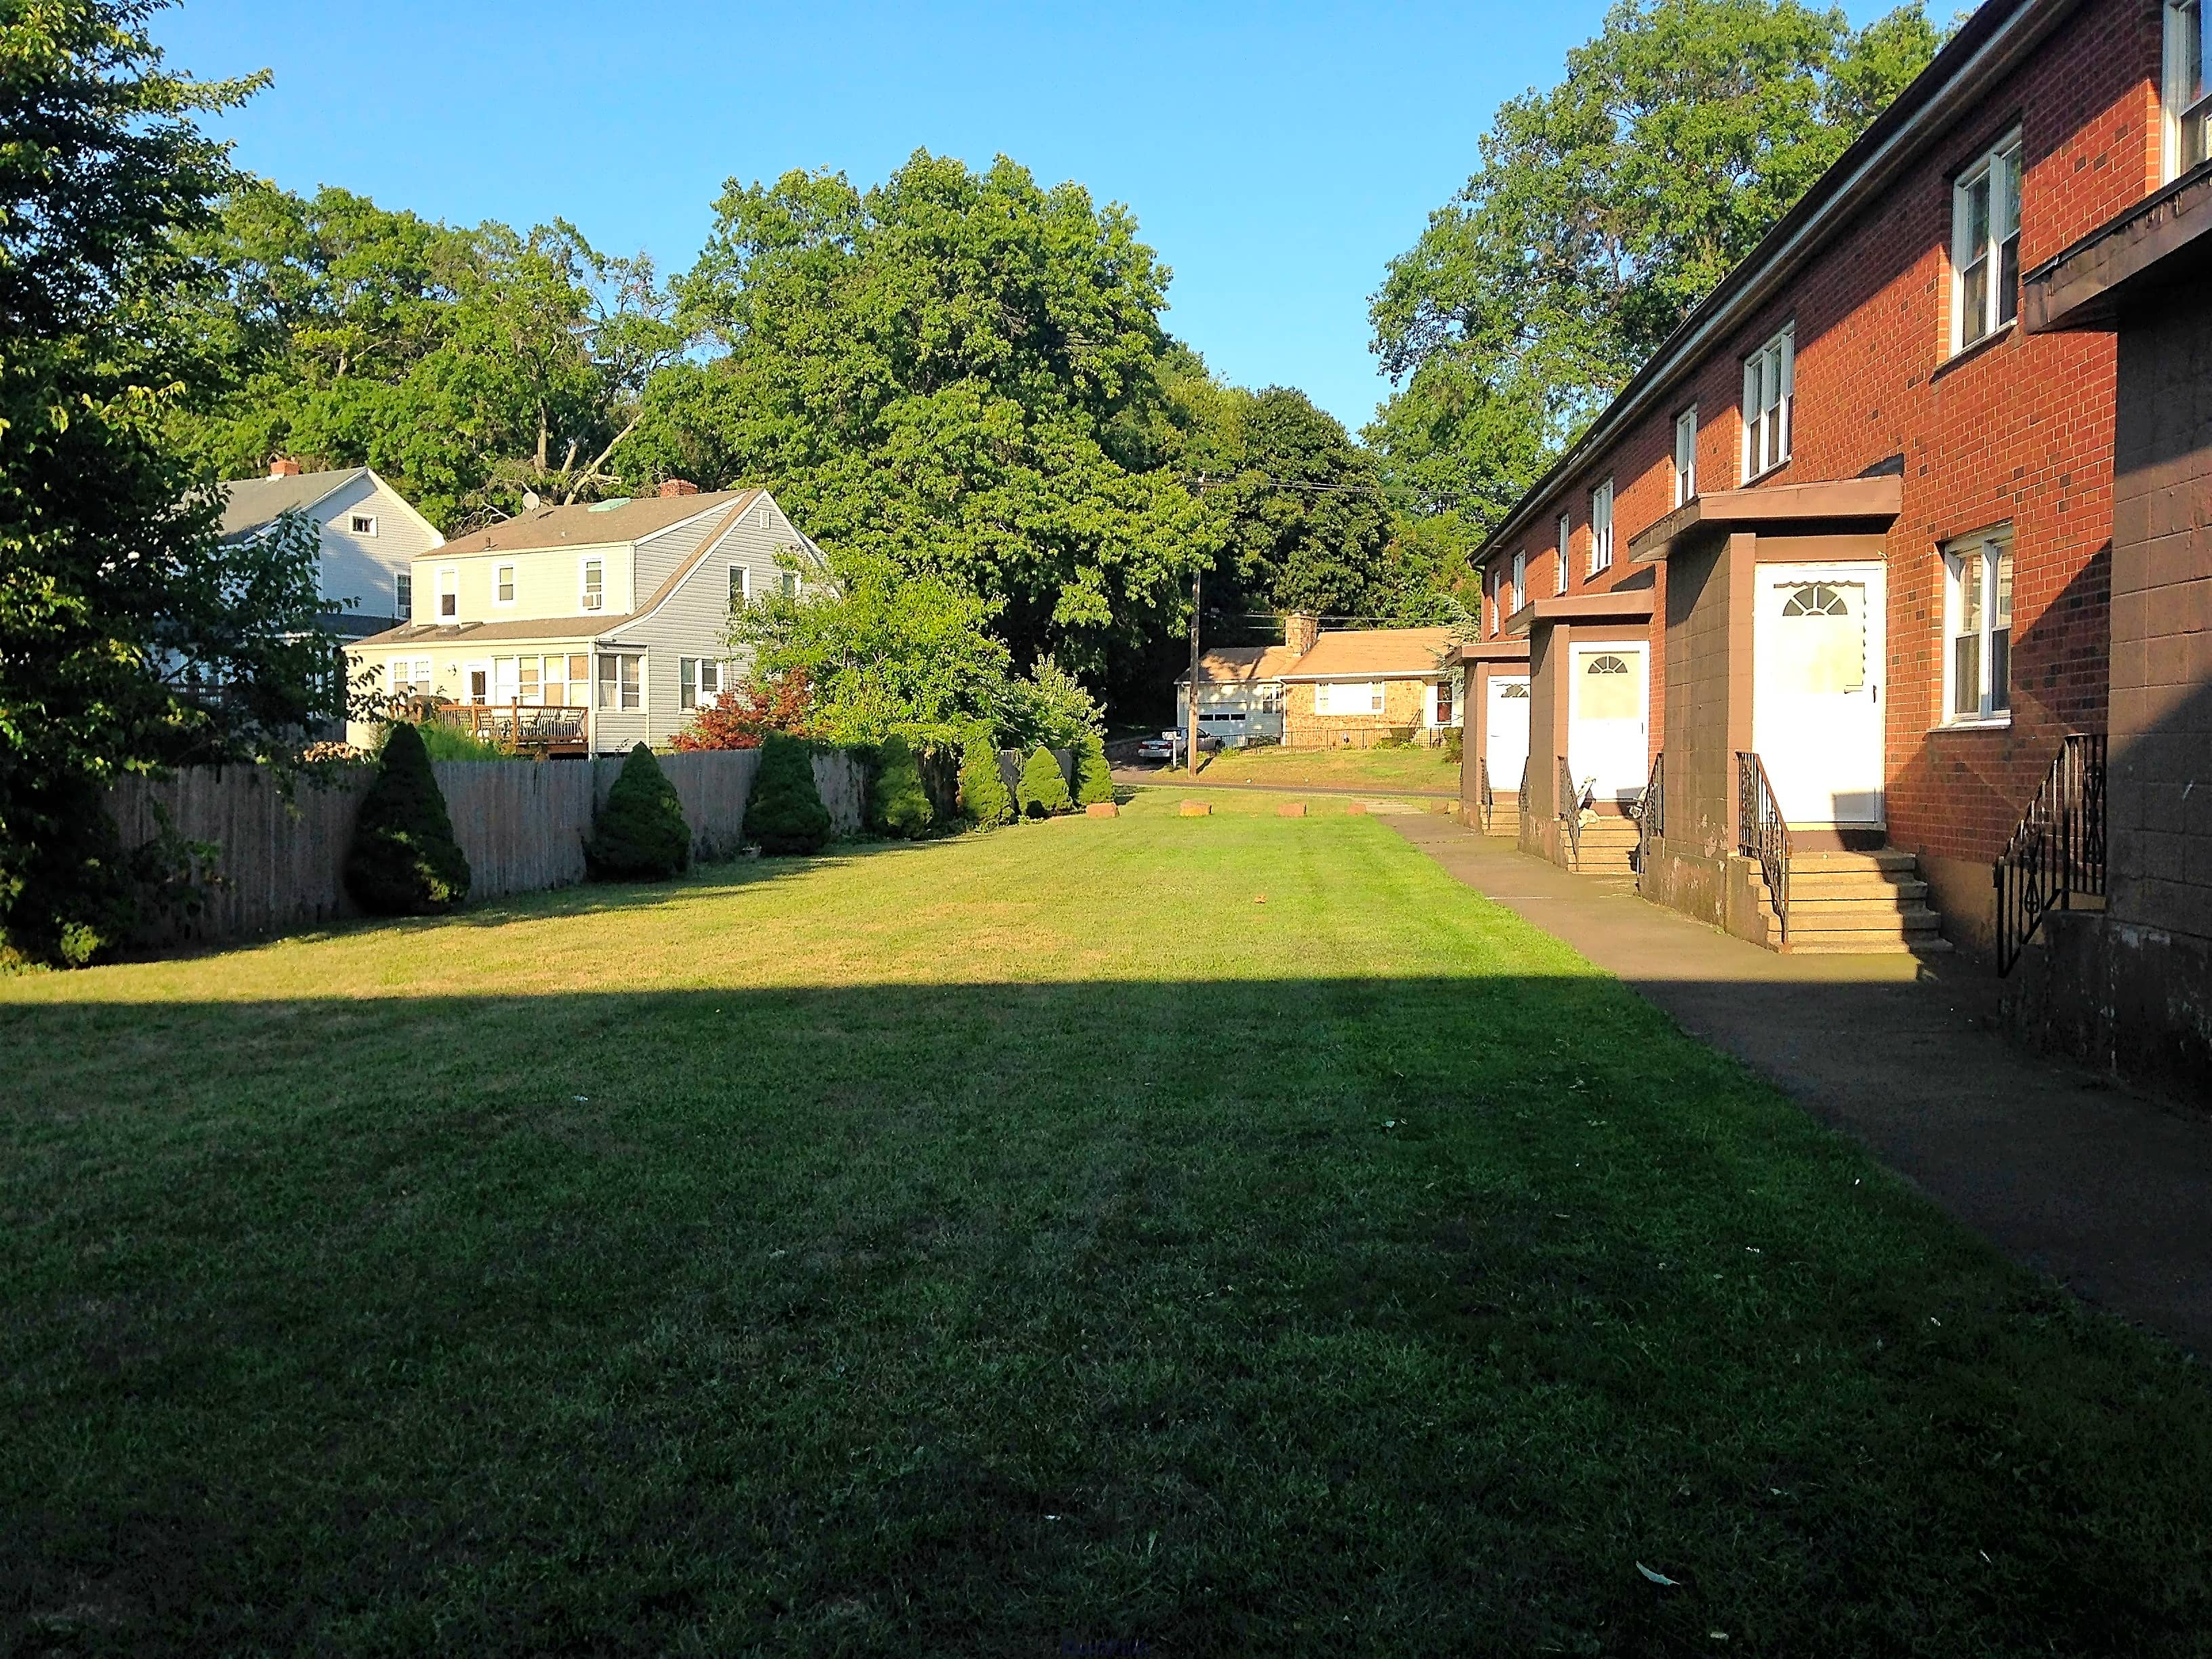 Condo for Rent in East Haven